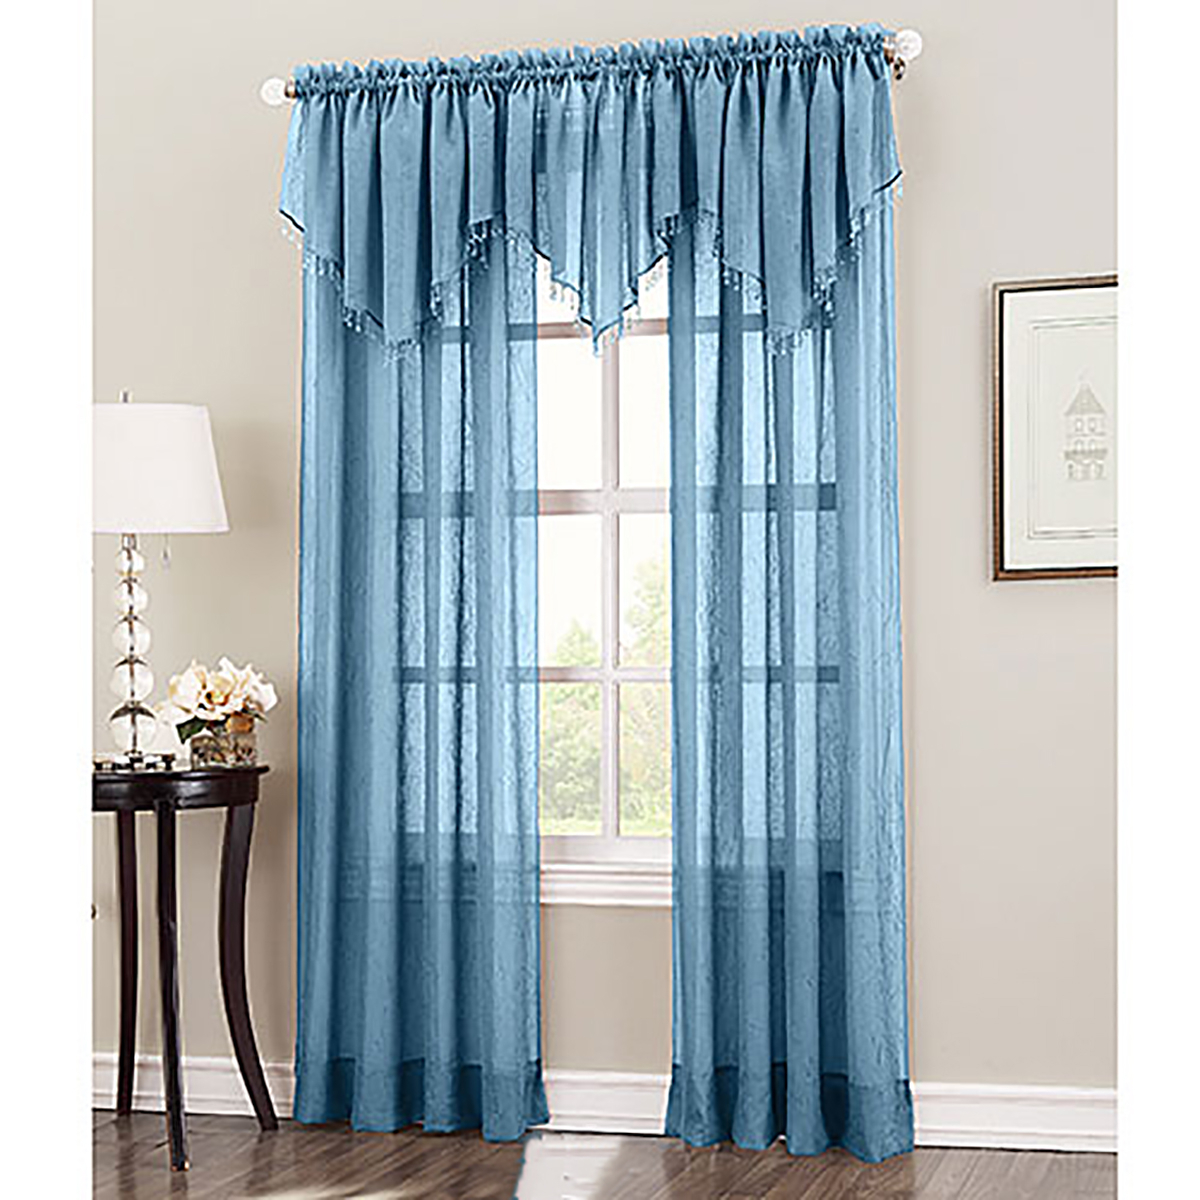 Erica Crushed Voile Curtain Panel With Erica Crushed Sheer Voile Grommet Curtain Panels (View 15 of 20)